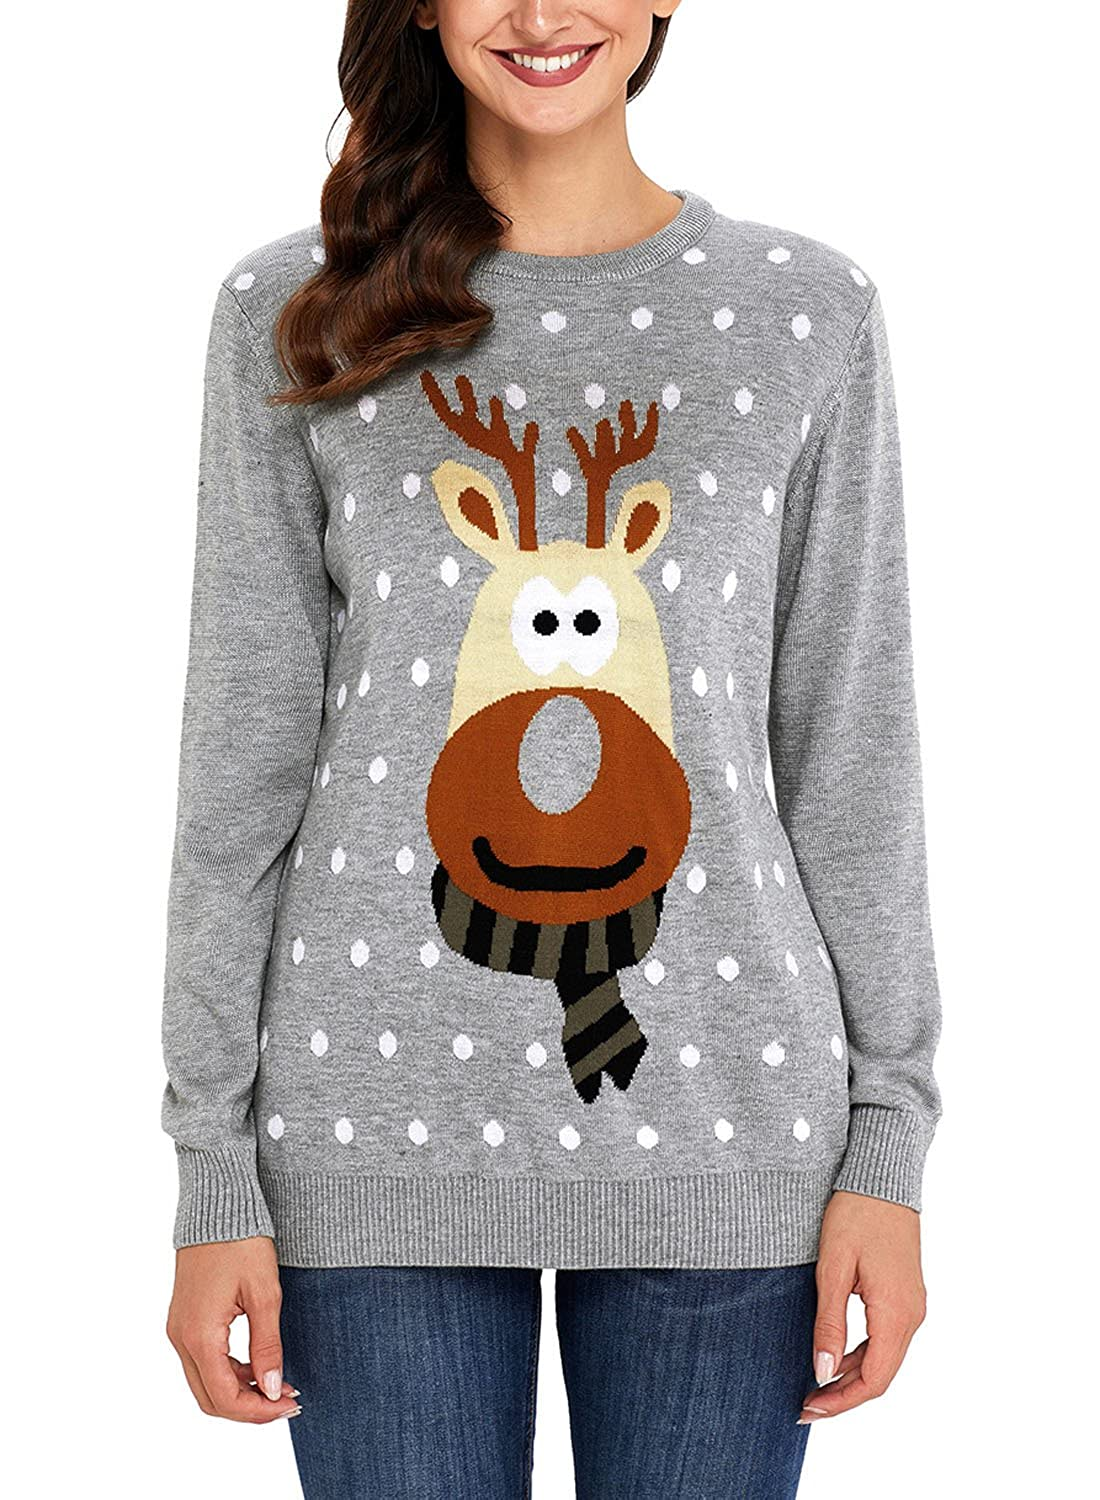 Women's Christmas Cute Reindeer Knitted Sweater Girl Pullover at ...